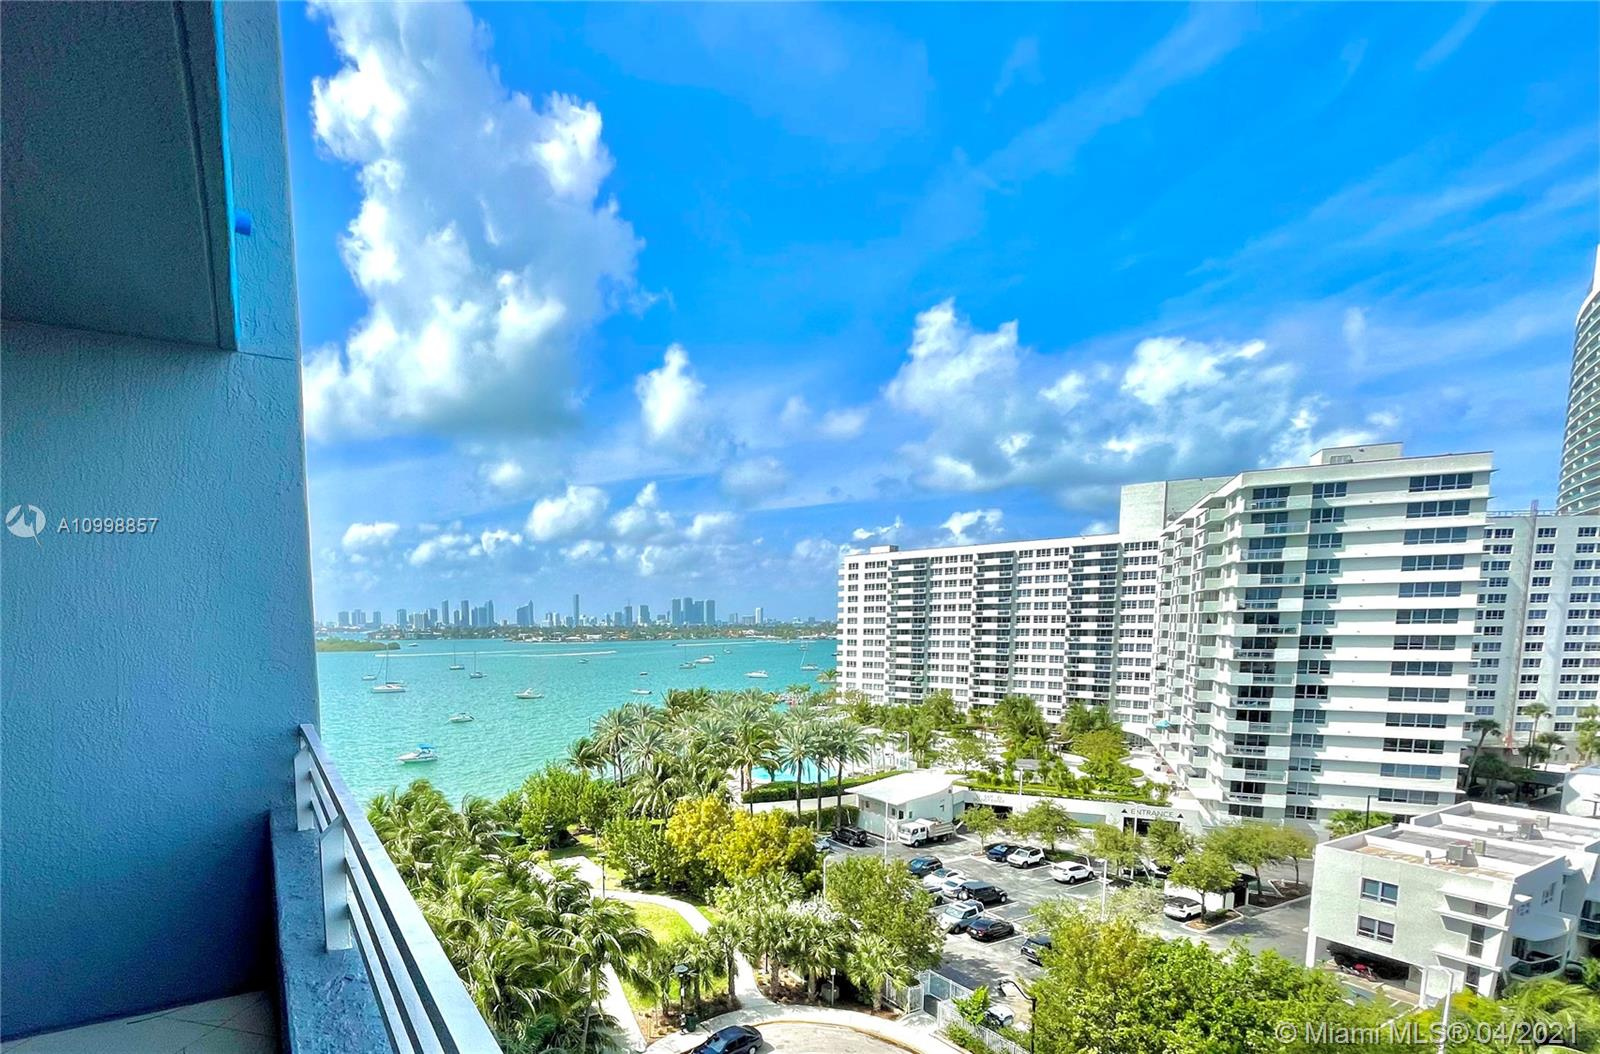 Enjoy the Miami Beach lifestyle in this fabulous 1 bedroom, 1.0 bath condo. Clean and well-planned 793 sqft floorplan. Enjoy an abundance of amenities and fine living with breathtaking views at one of the best places in Miami, South Beach! Building amenities include: cafe & mini market, fully renovated 4th floor roof garden with private areas for gatherings and bbqs, lounge chairs, modern koi pond and incredible bay views. Tennis court, putting green, and more. Plus volleyball, a bayside swimming pool, 24hr security, 1 parking spaces (1 valet), a contemporary ballroom to host your own events with state of the art furniture, bar, kitchen and a flat screen tv. Fitness area with a professional gym, spa, massage and yoga/spinning rooms.